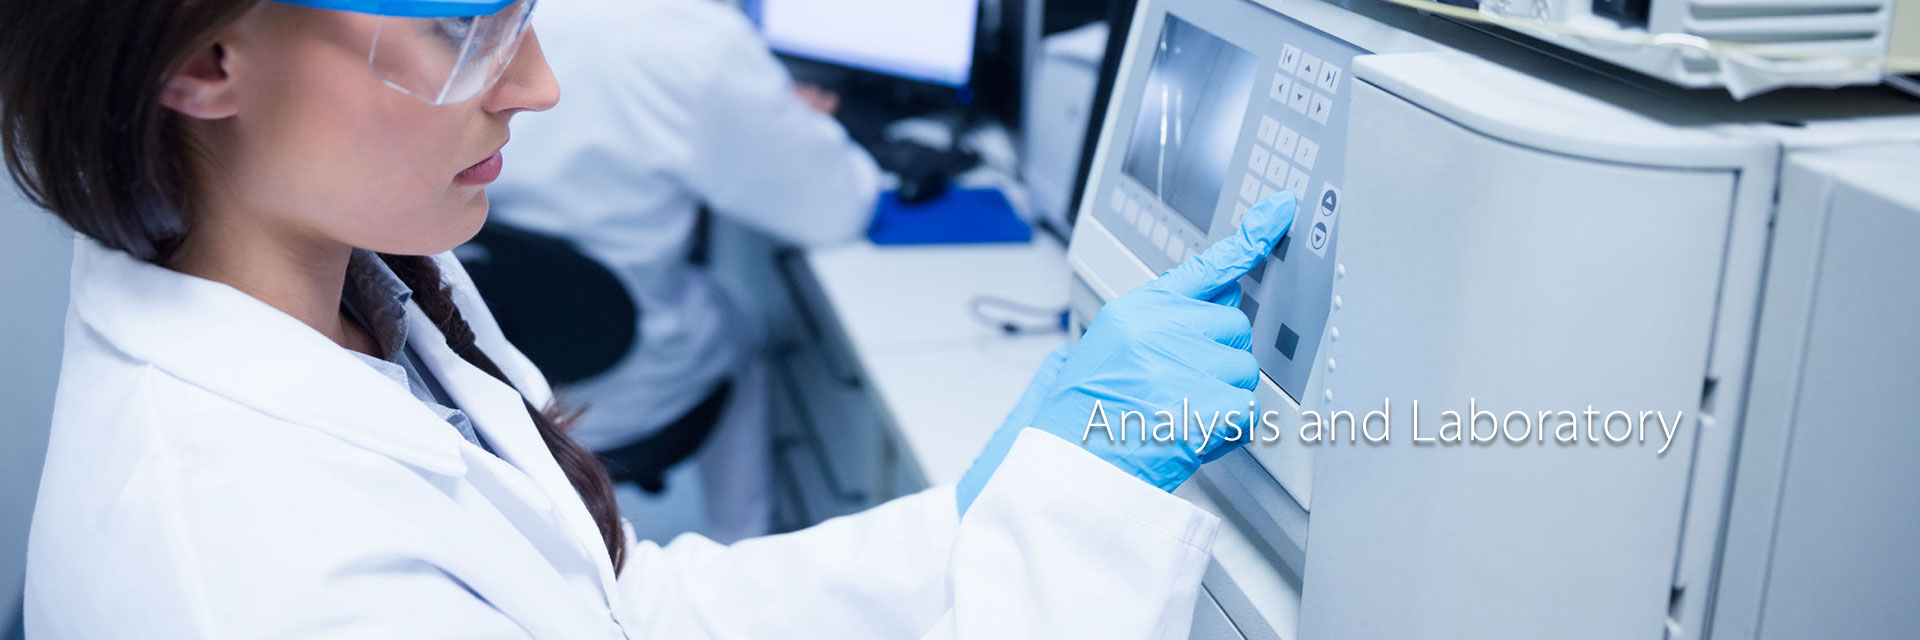 Analysis and Laboratory